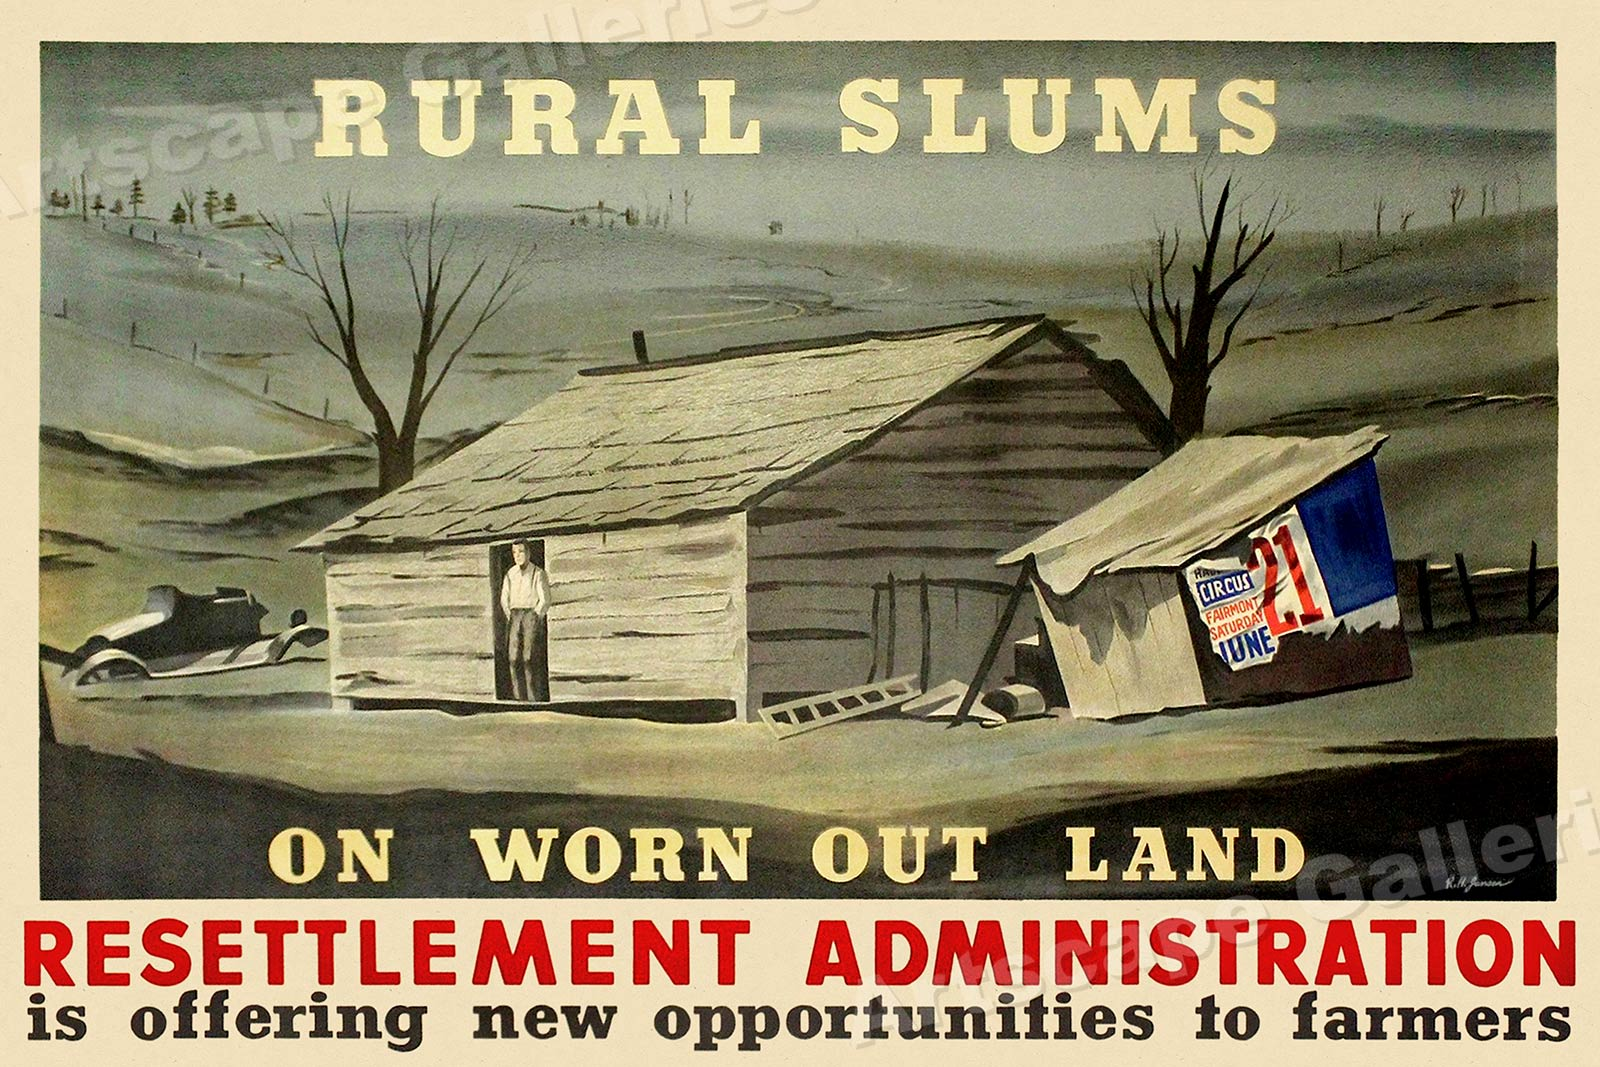 16x24 1936 Dust Bowl Farmland Rural Slums Resettlement Vintage Style Poster